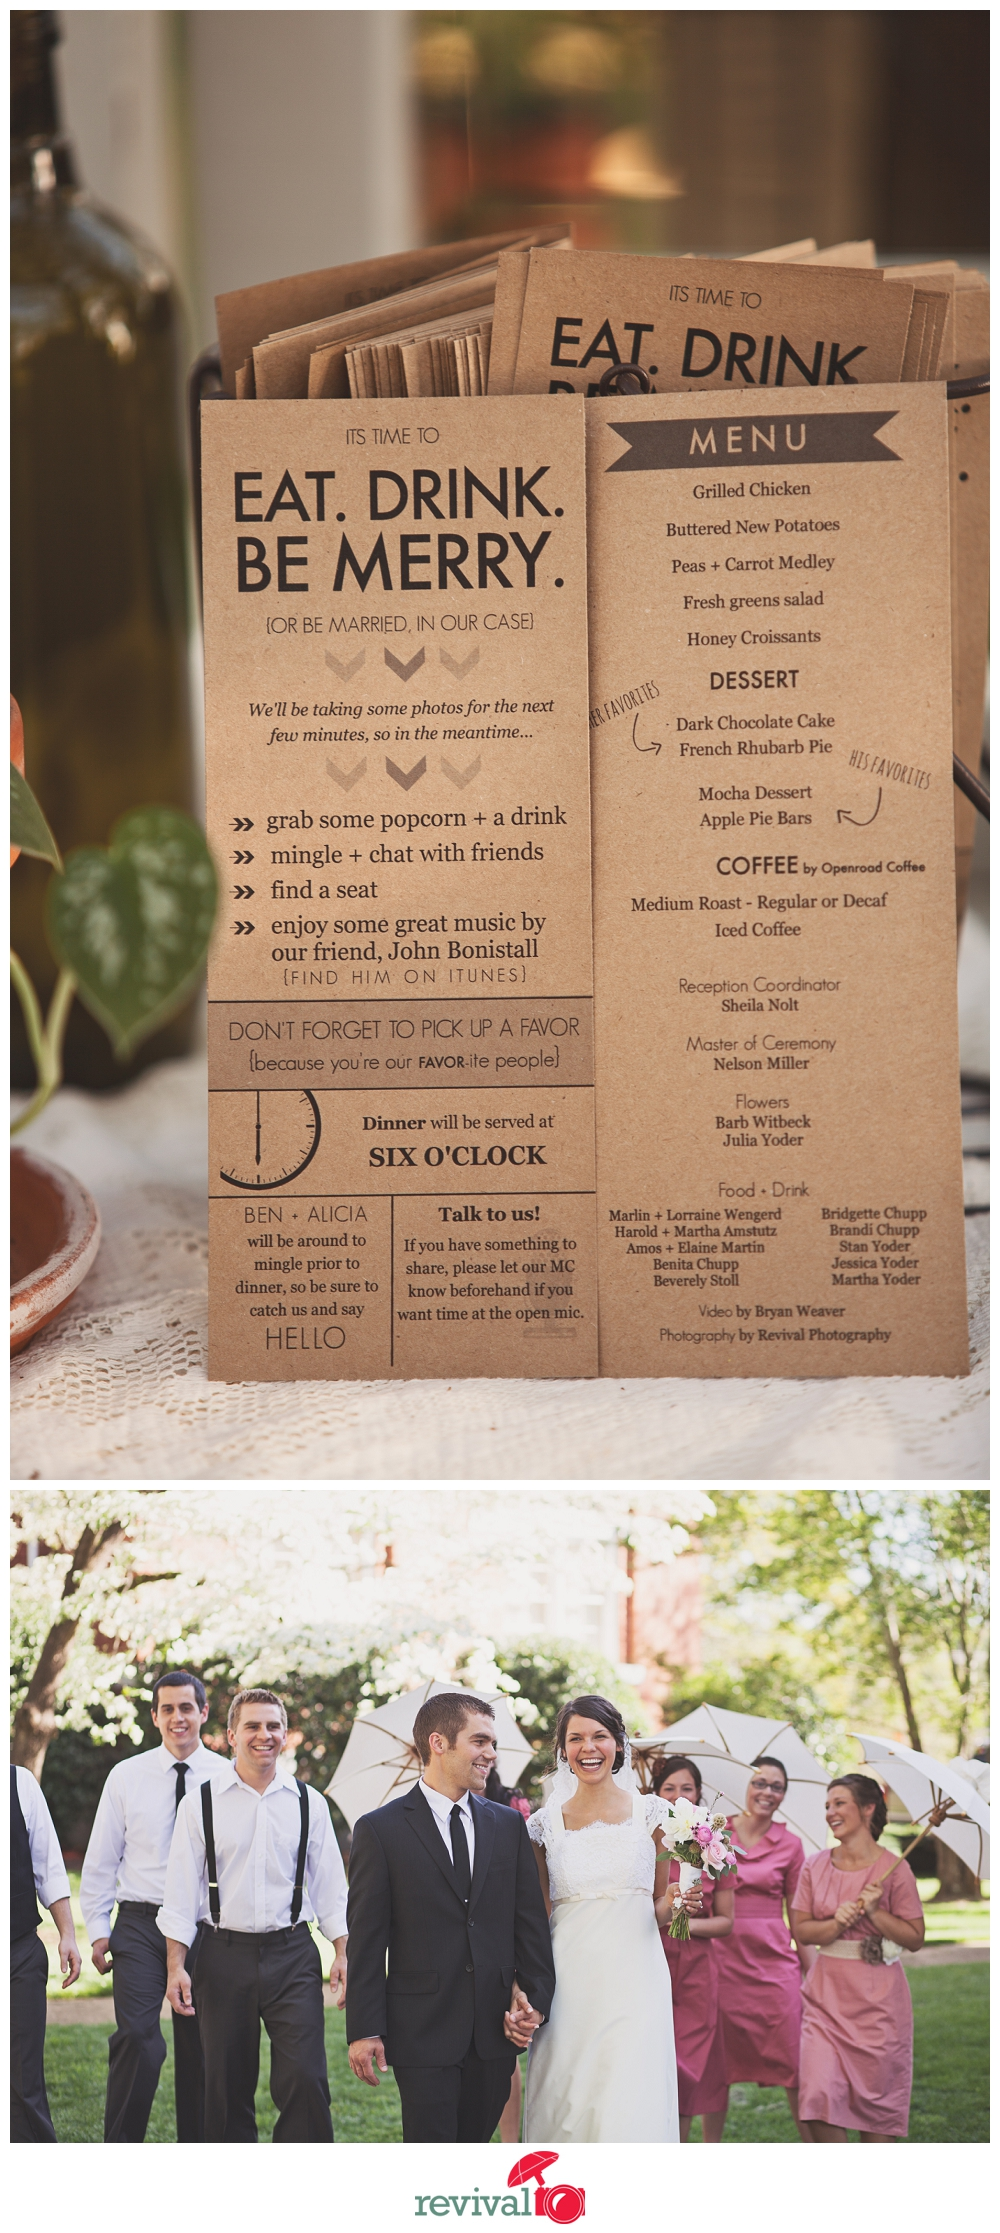 Creative wedding ideas How to Plan a DIY Vintage Rustic Chic Wedding Keeping it Thrifty Photos by Revival Photography Photo